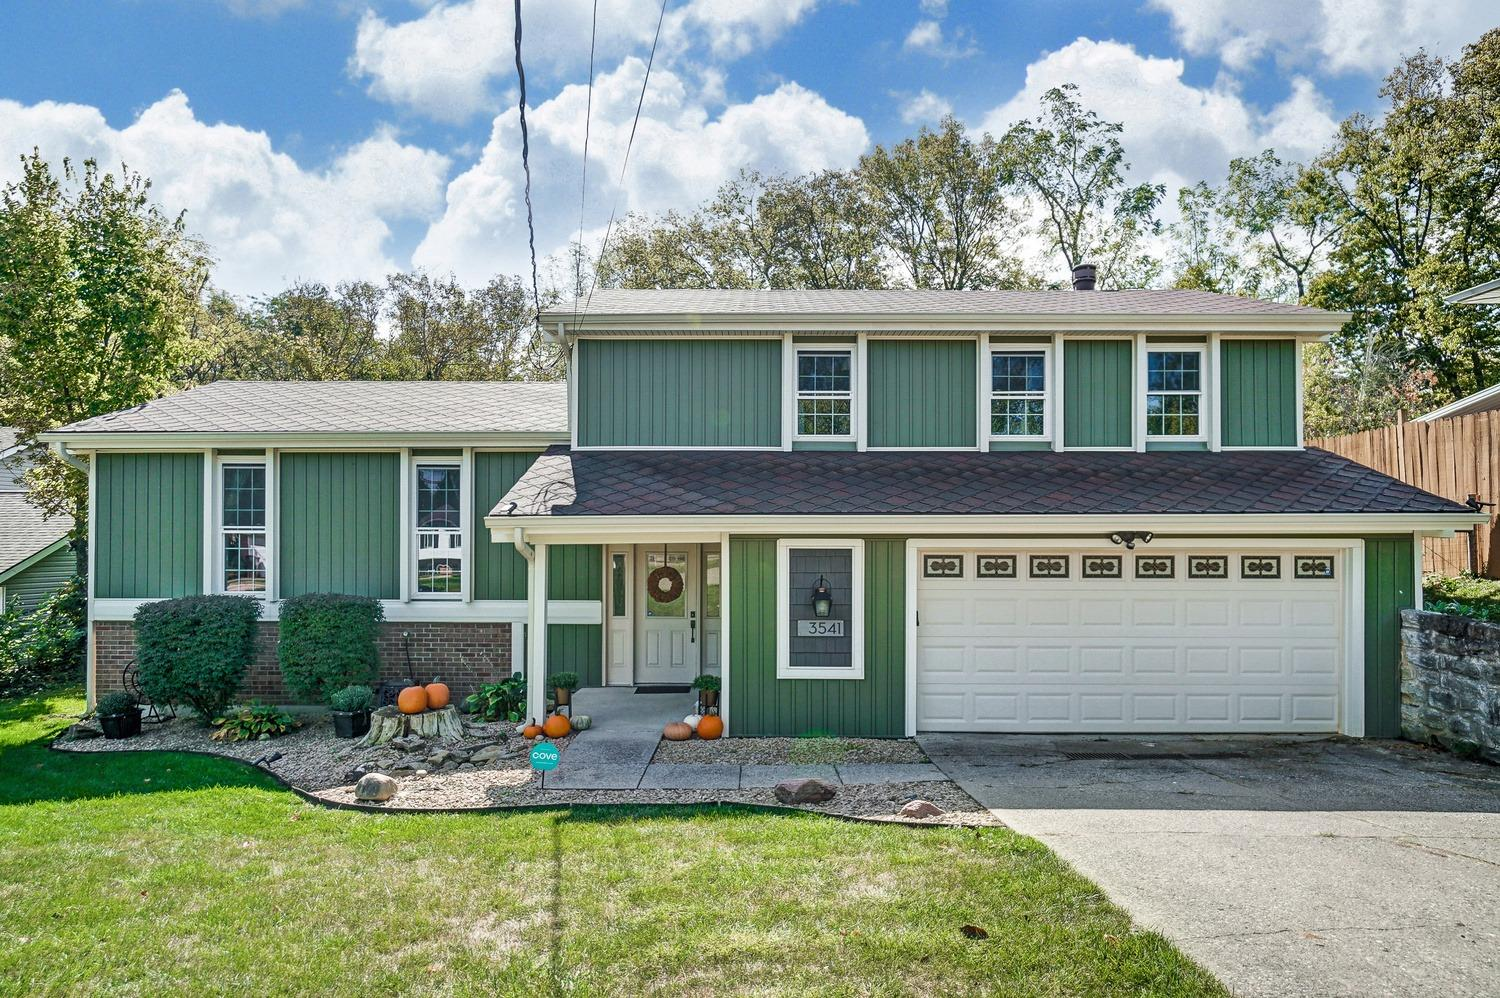 You'll love this 4 bed, 2.5 bath charming quad with fenced-in flat backyard (perfect place to add a pool)! Roof, siding, gutters & windows all updated in 2018.Flring, kit, baths updated 19-20. Fresh paint, lighting & carpet. Inside & Outside perfect for family fun & entertaining! Accepting all offers until 10/11 @ 5pm. Seller Res Rt to accept early